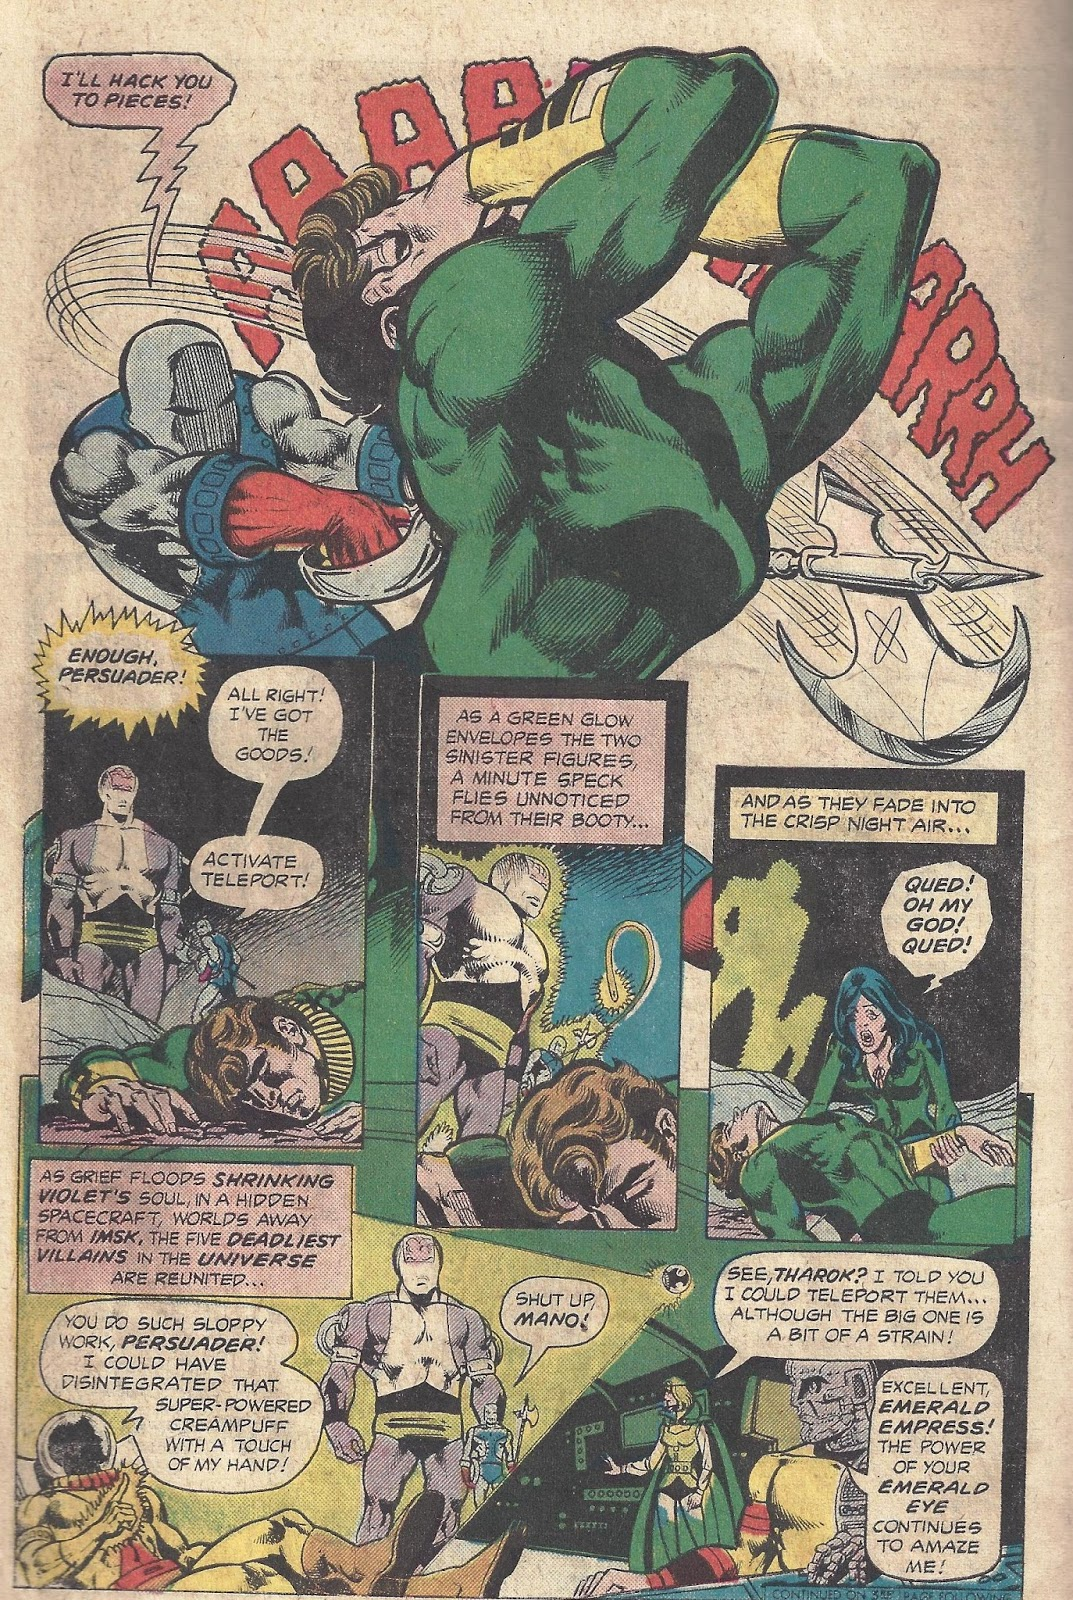 Bronze Age Babies: Iron Mike's Legion: Superboy and the